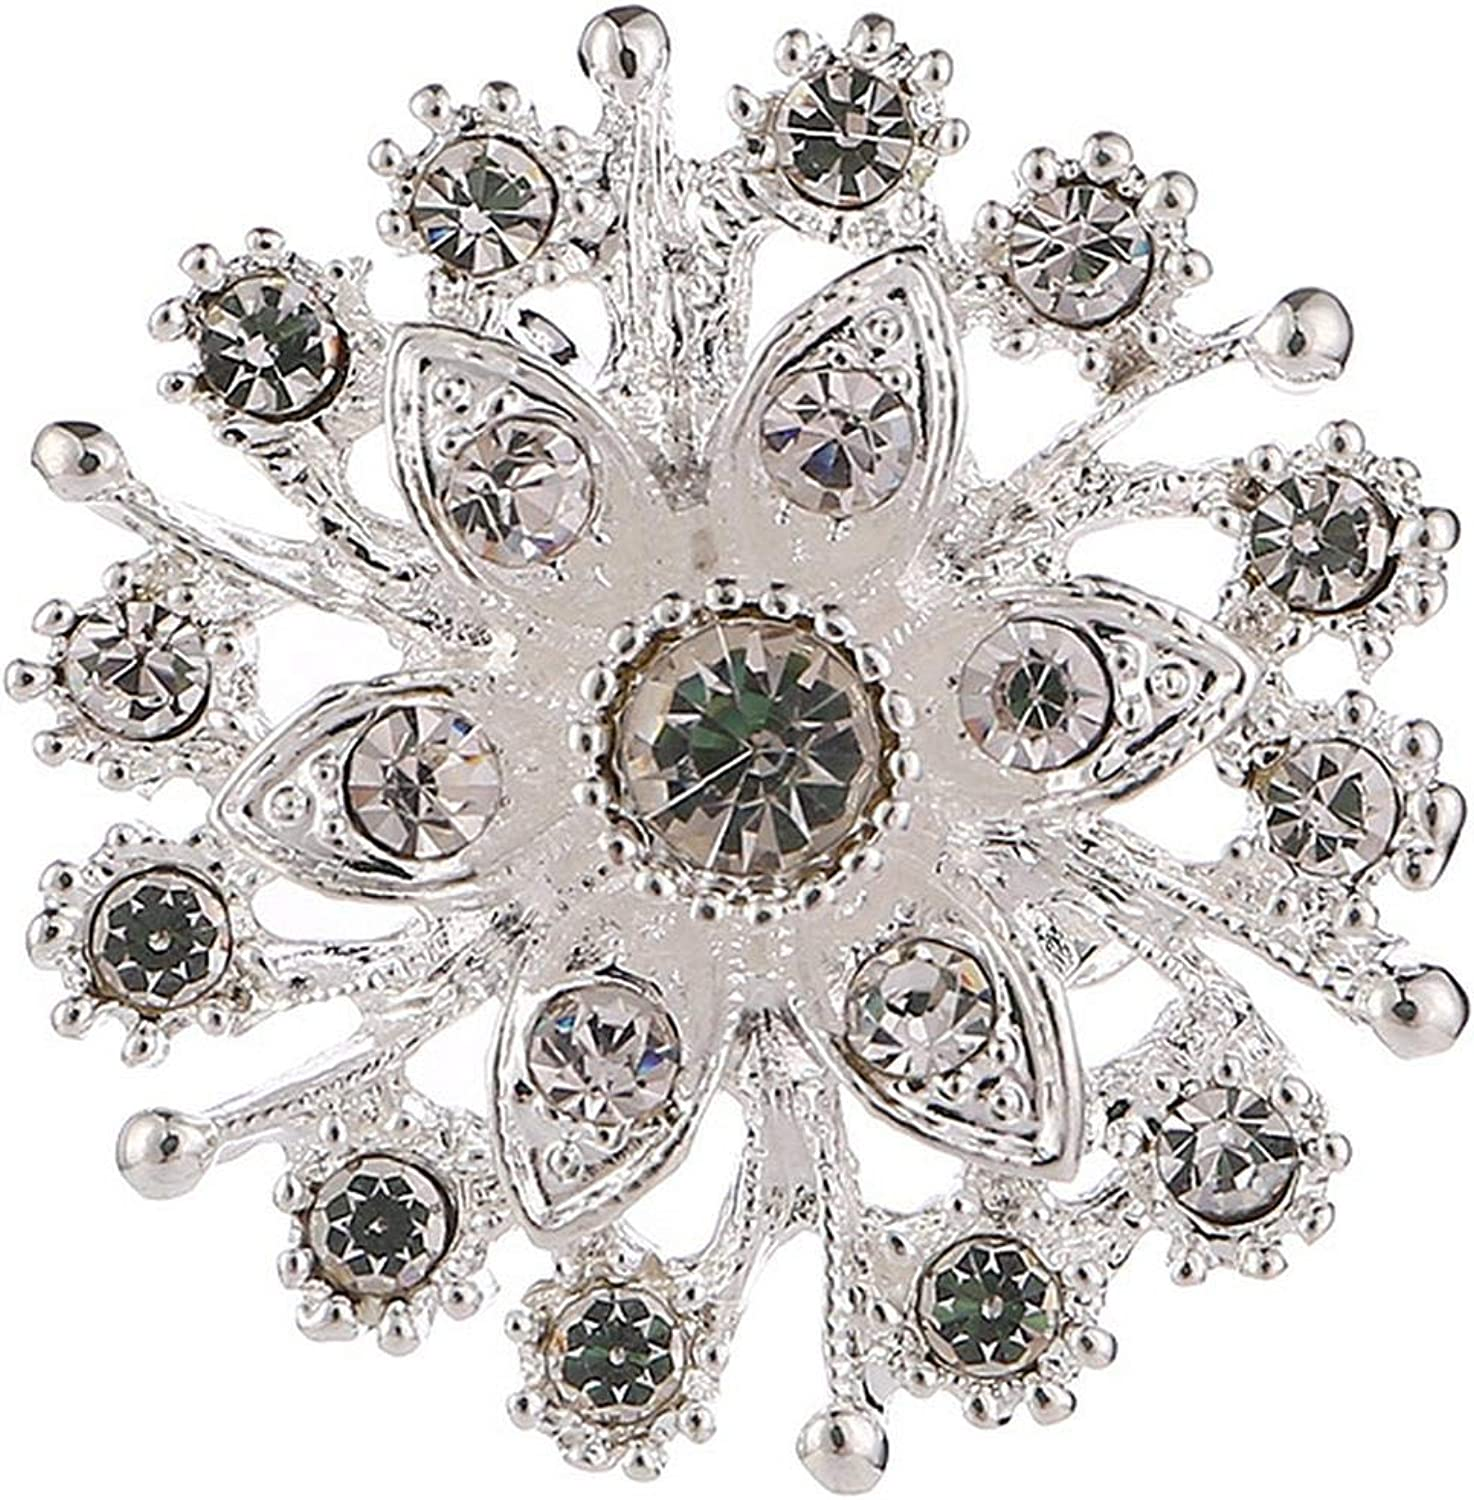 Kabby Fashion Women Silvery Color Flower Shapes Crystals Imitation Pearl Brooch Pin Jewelry Gift pins broches de Strass luxo